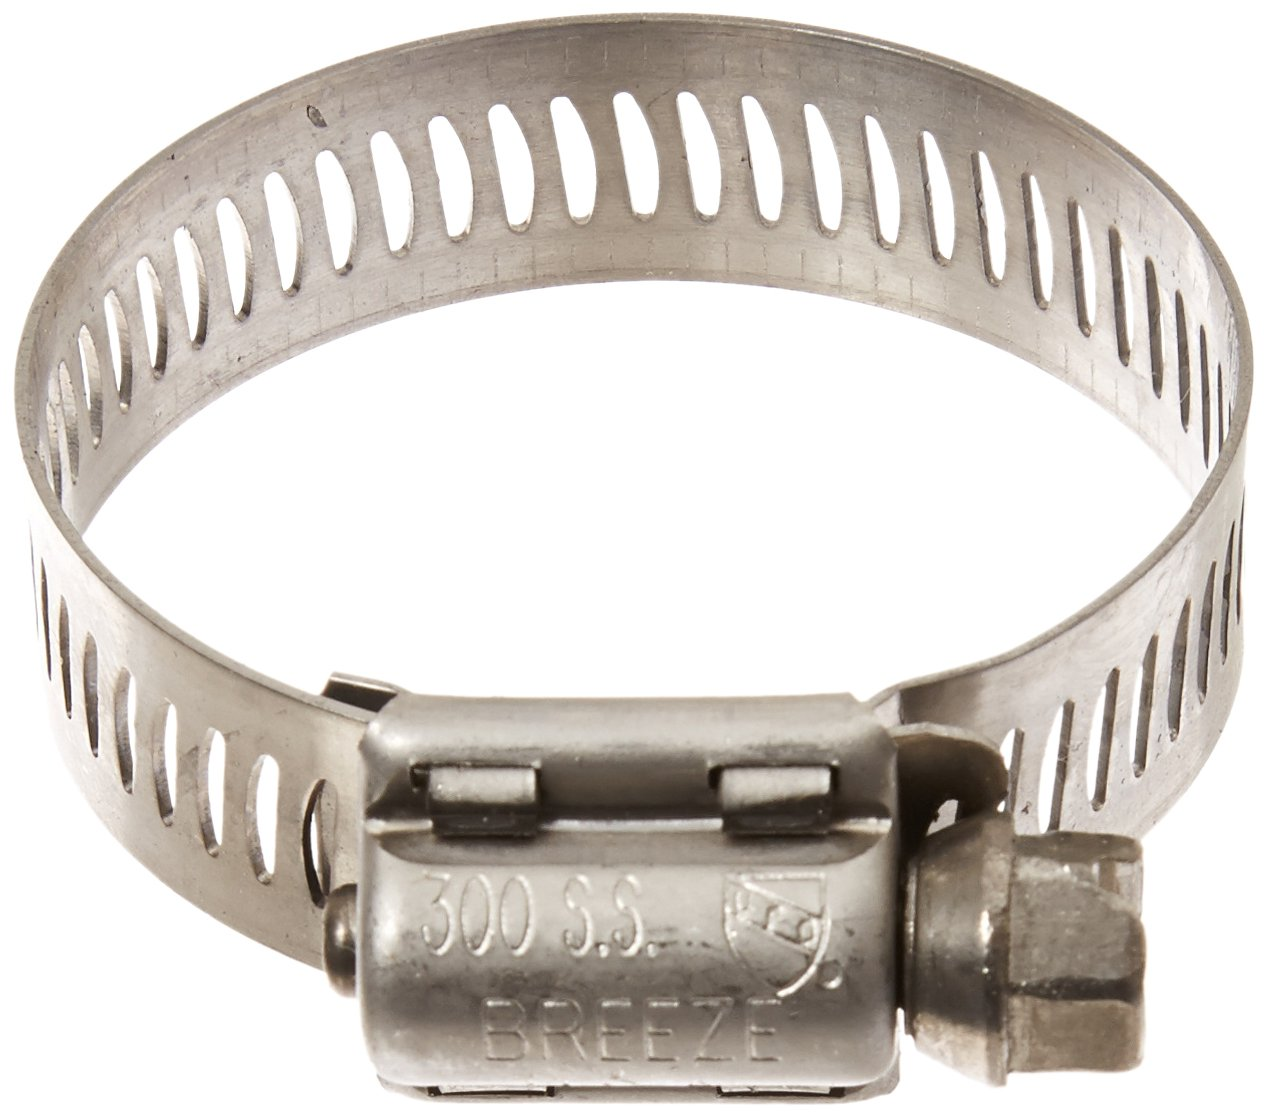 Breeze 63020H Marine Grade Power-Seal Stainless Steel Hose Clamp, Worm-Drive, SAE Size, 13/16'' to 1-3/4'' Diameter Range, 1/2'' Band Width (Pack of 10)